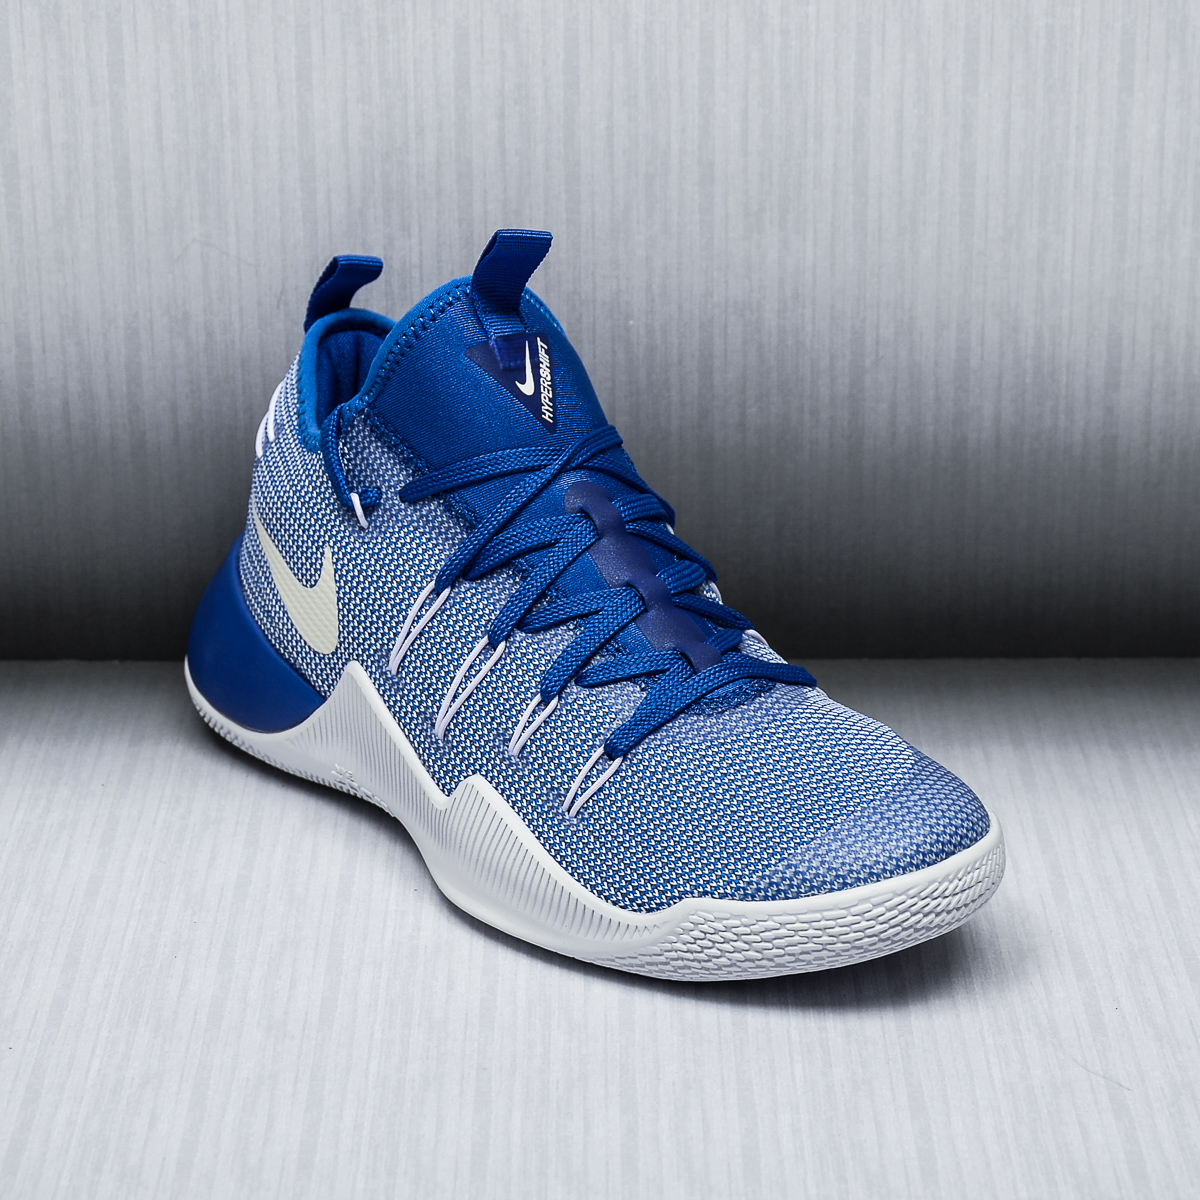 Nike Hypershift TB Basketball Shoes - BASKETBALL SHOES ...